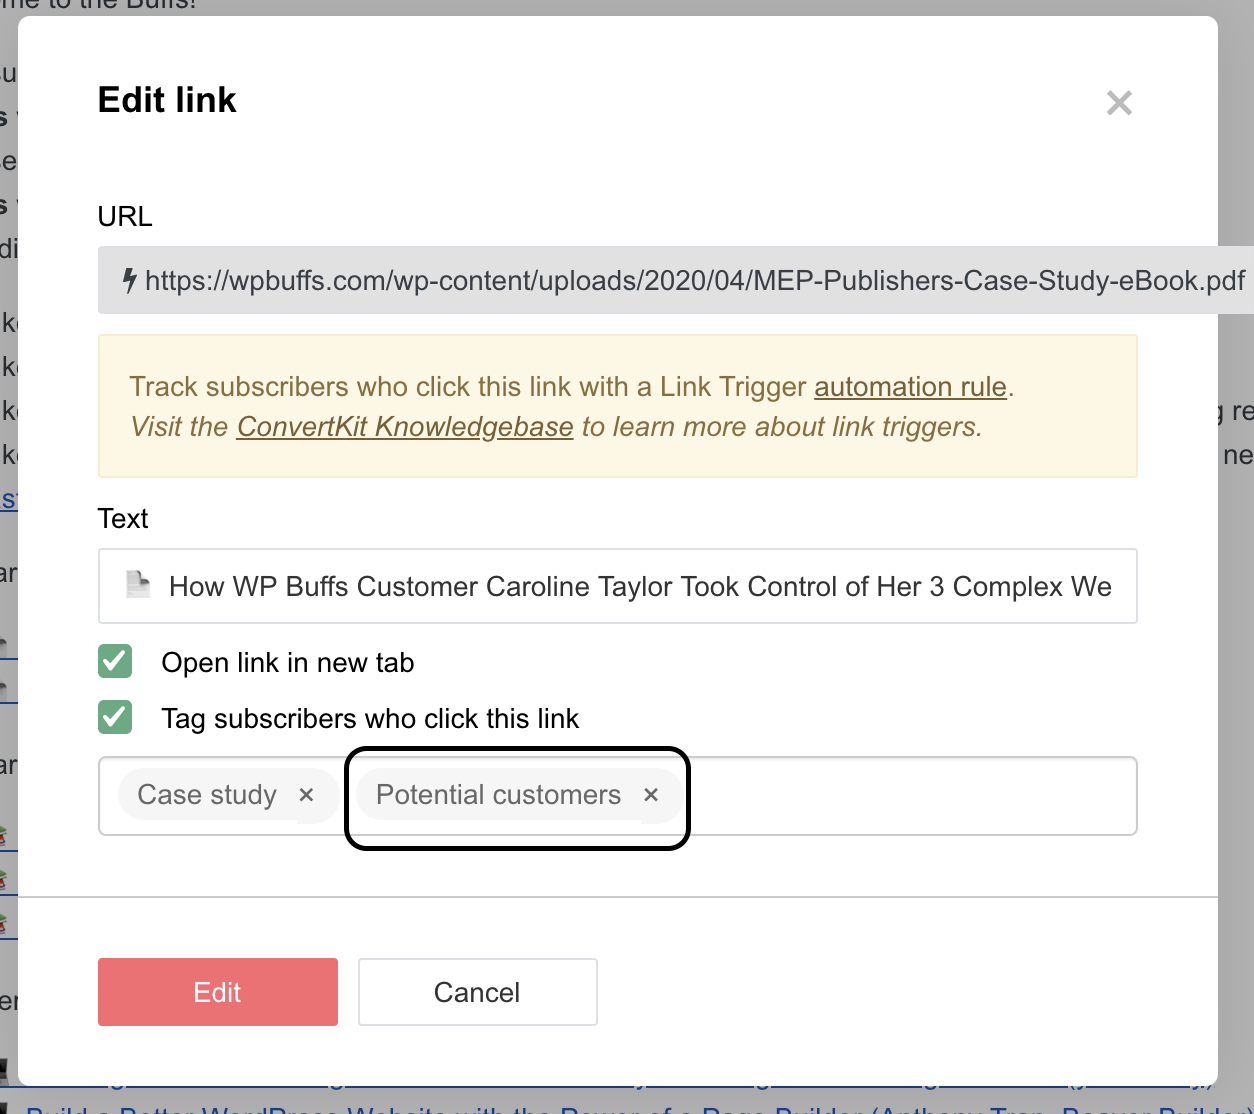 Back end of a link showing clicking that link will tag you as a potential customer